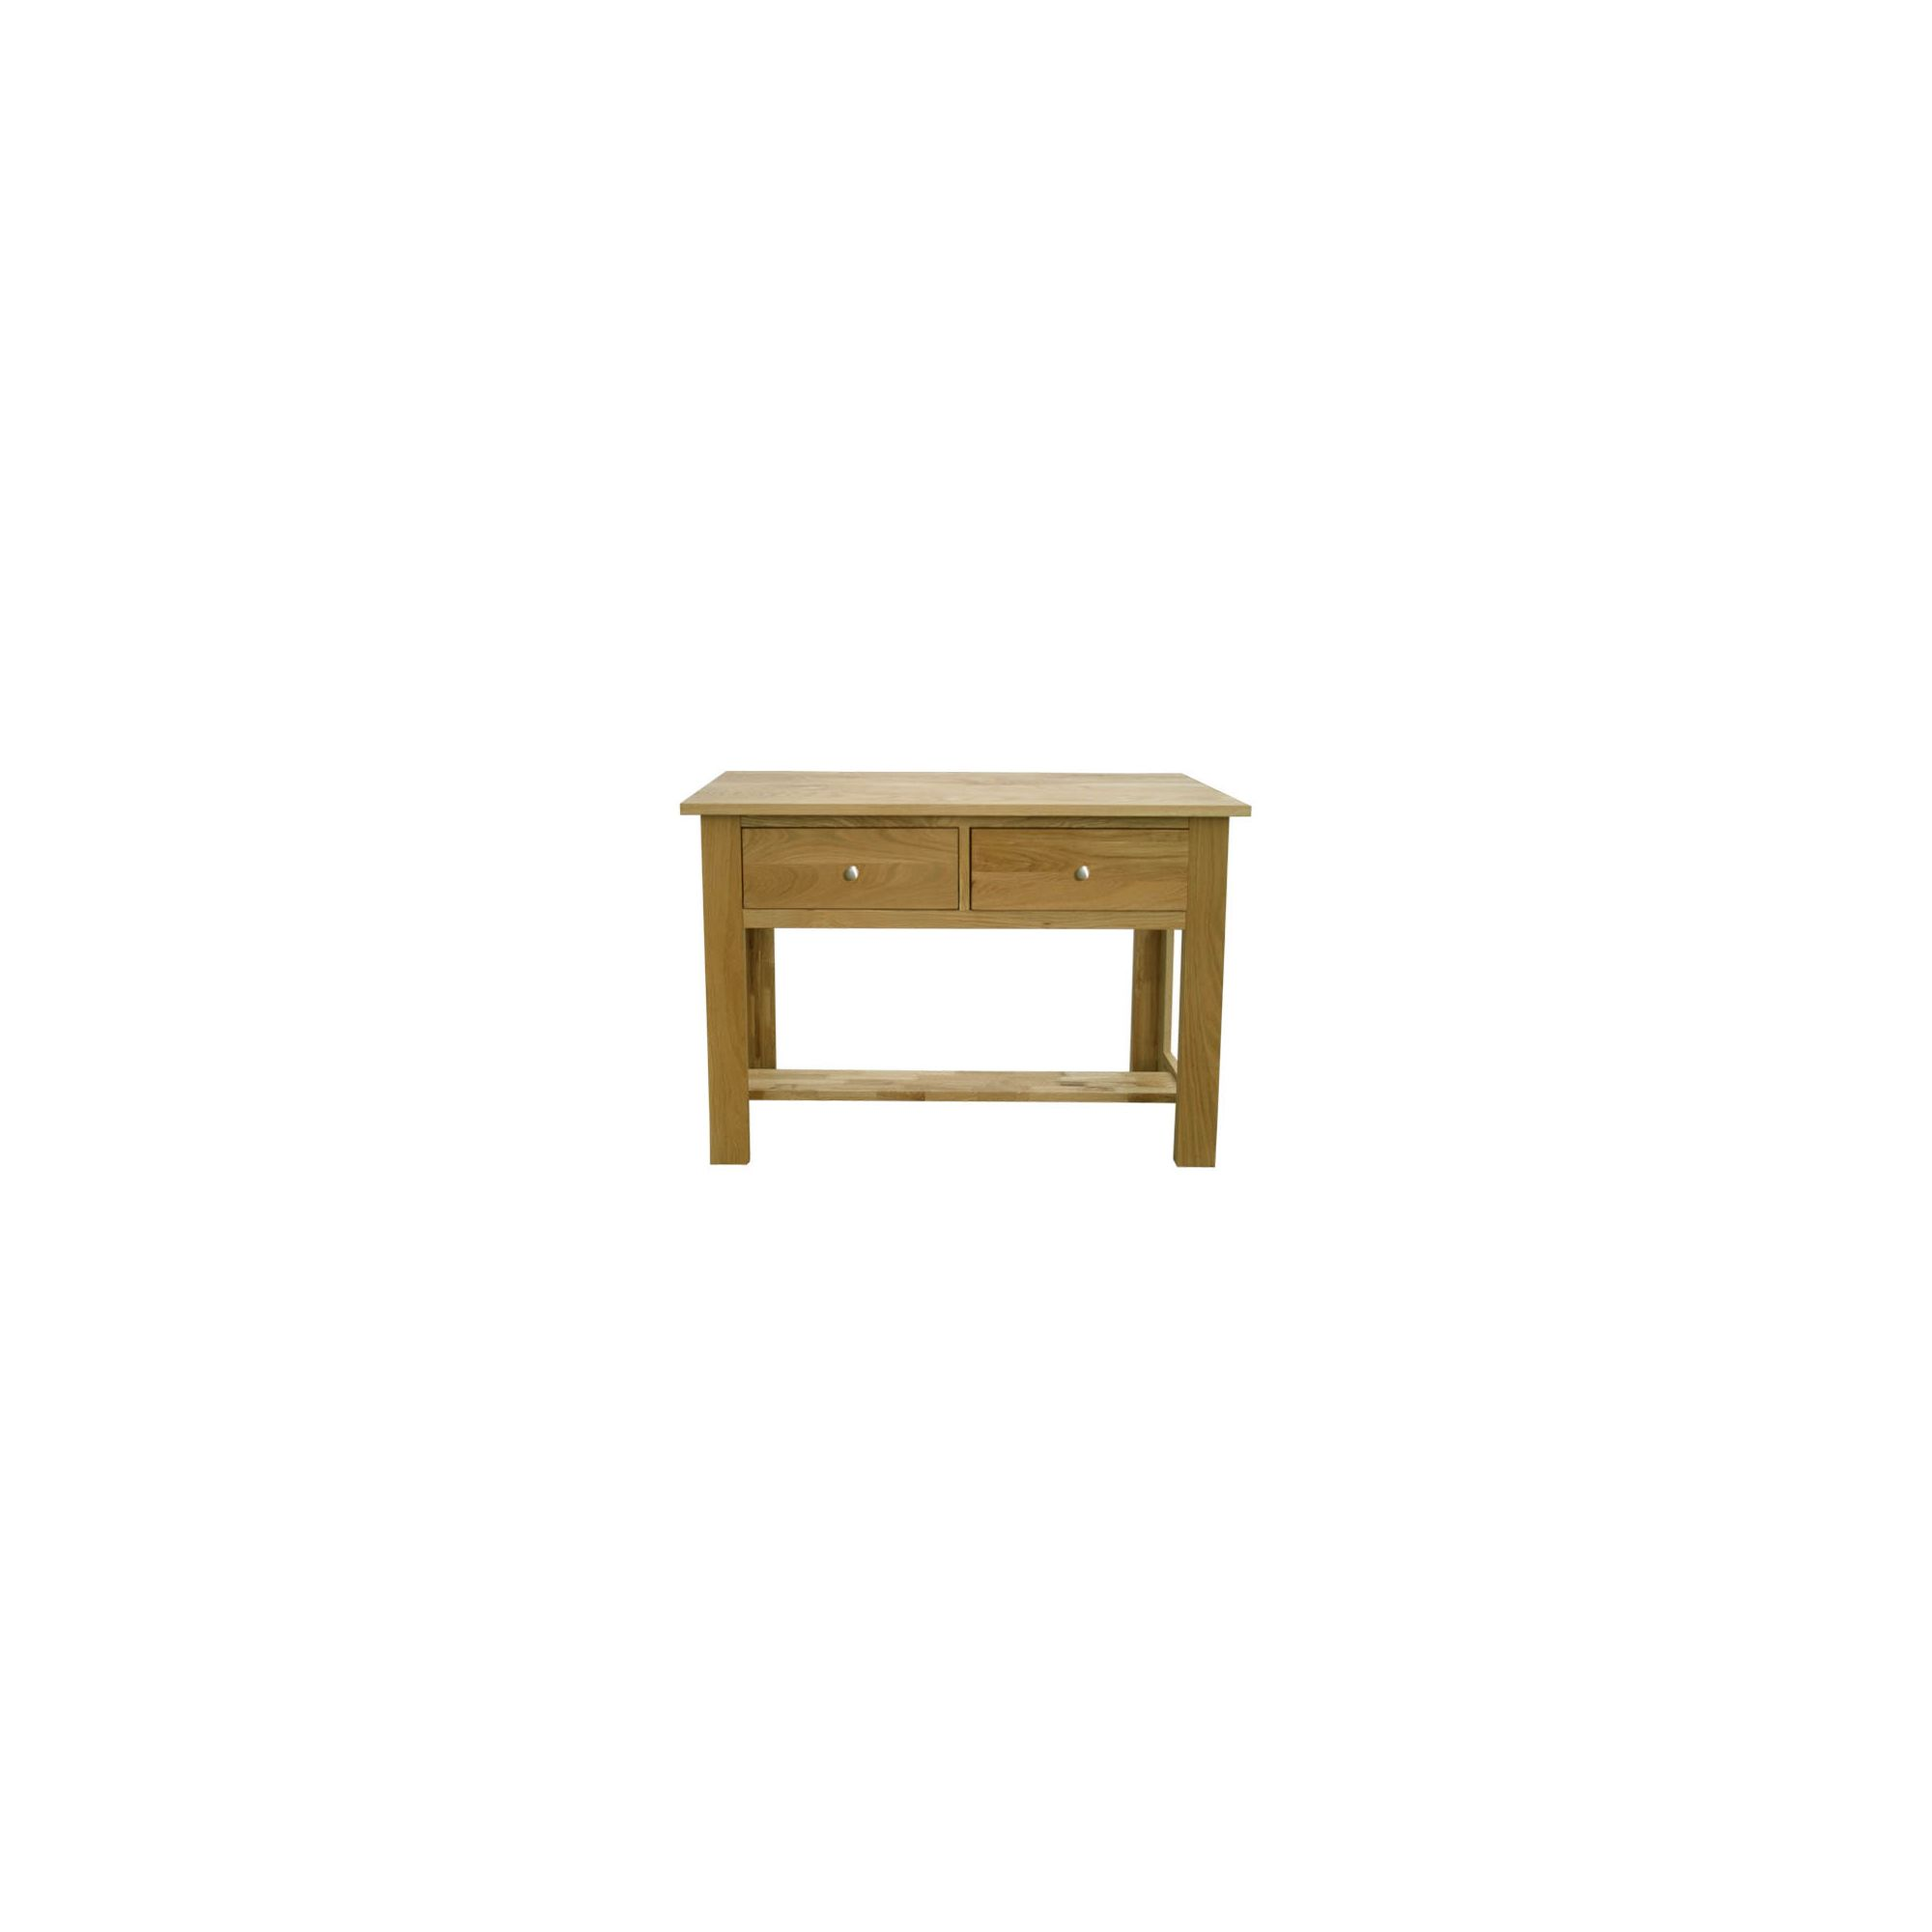 Home Zone Furniture Lincoln Oak 2009 Large Console Table at Tesco Direct